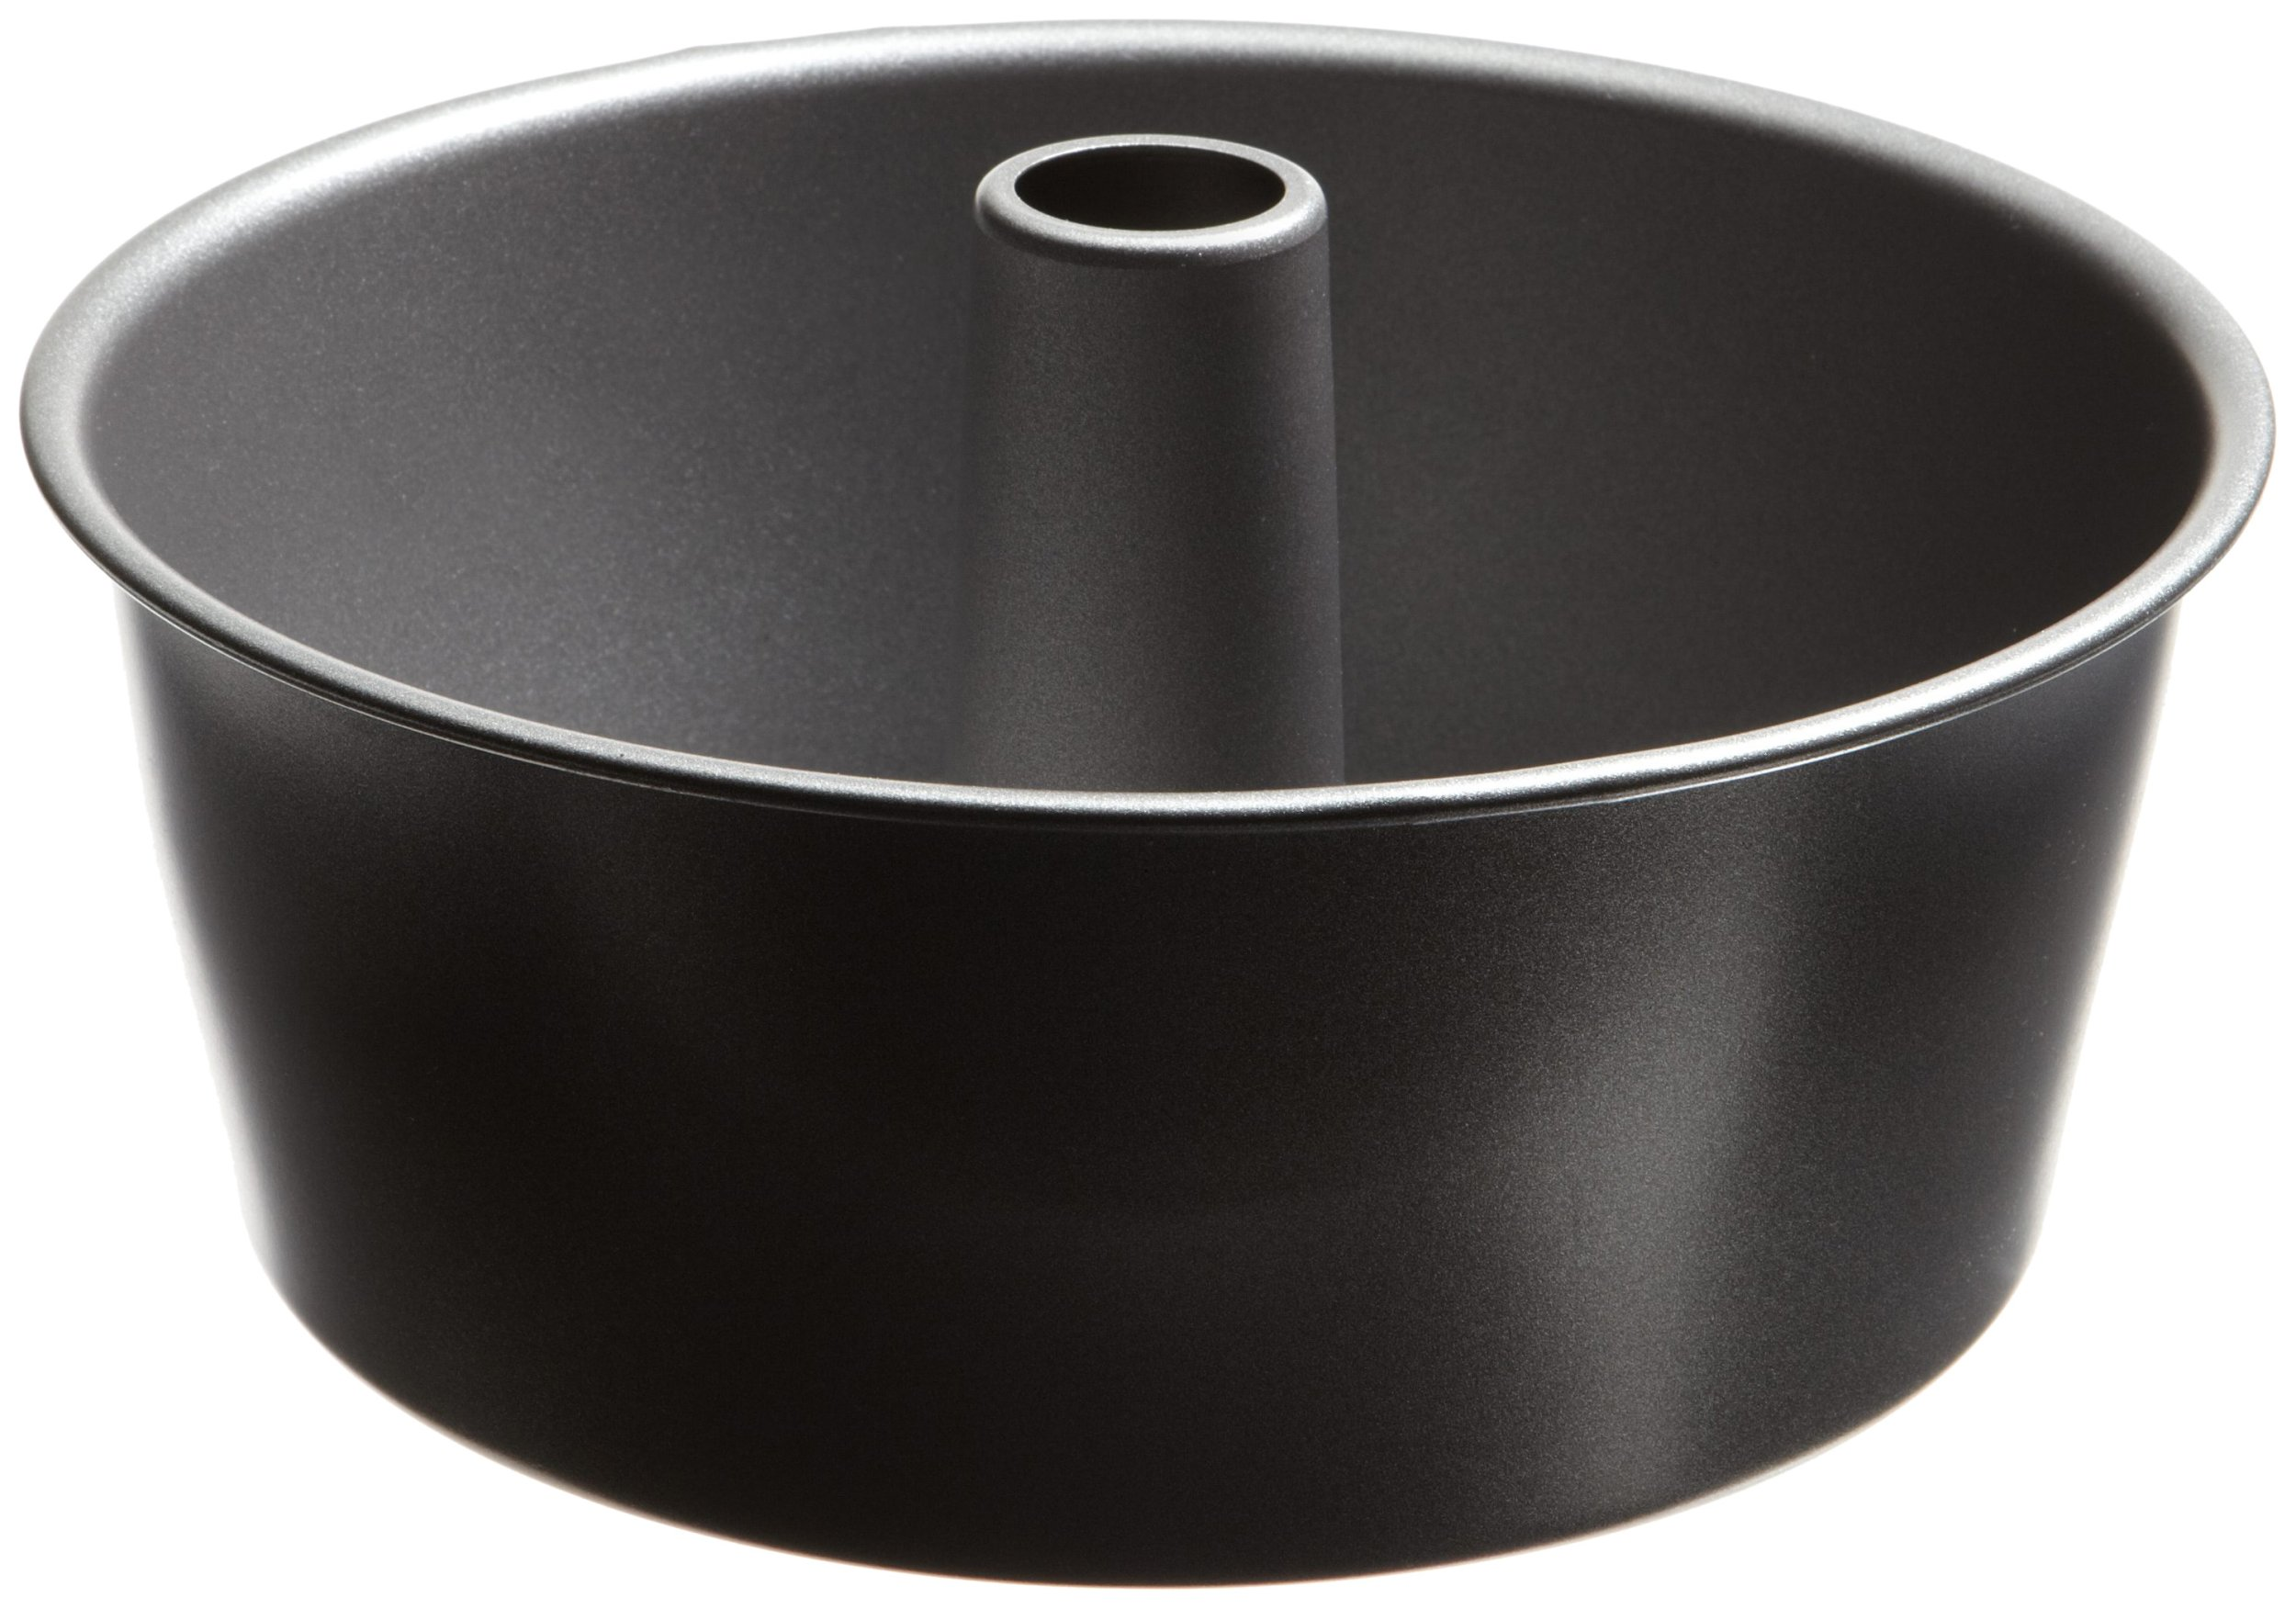 Good Cook Non-Stick Angel Food Pan with 2 Piece Designs